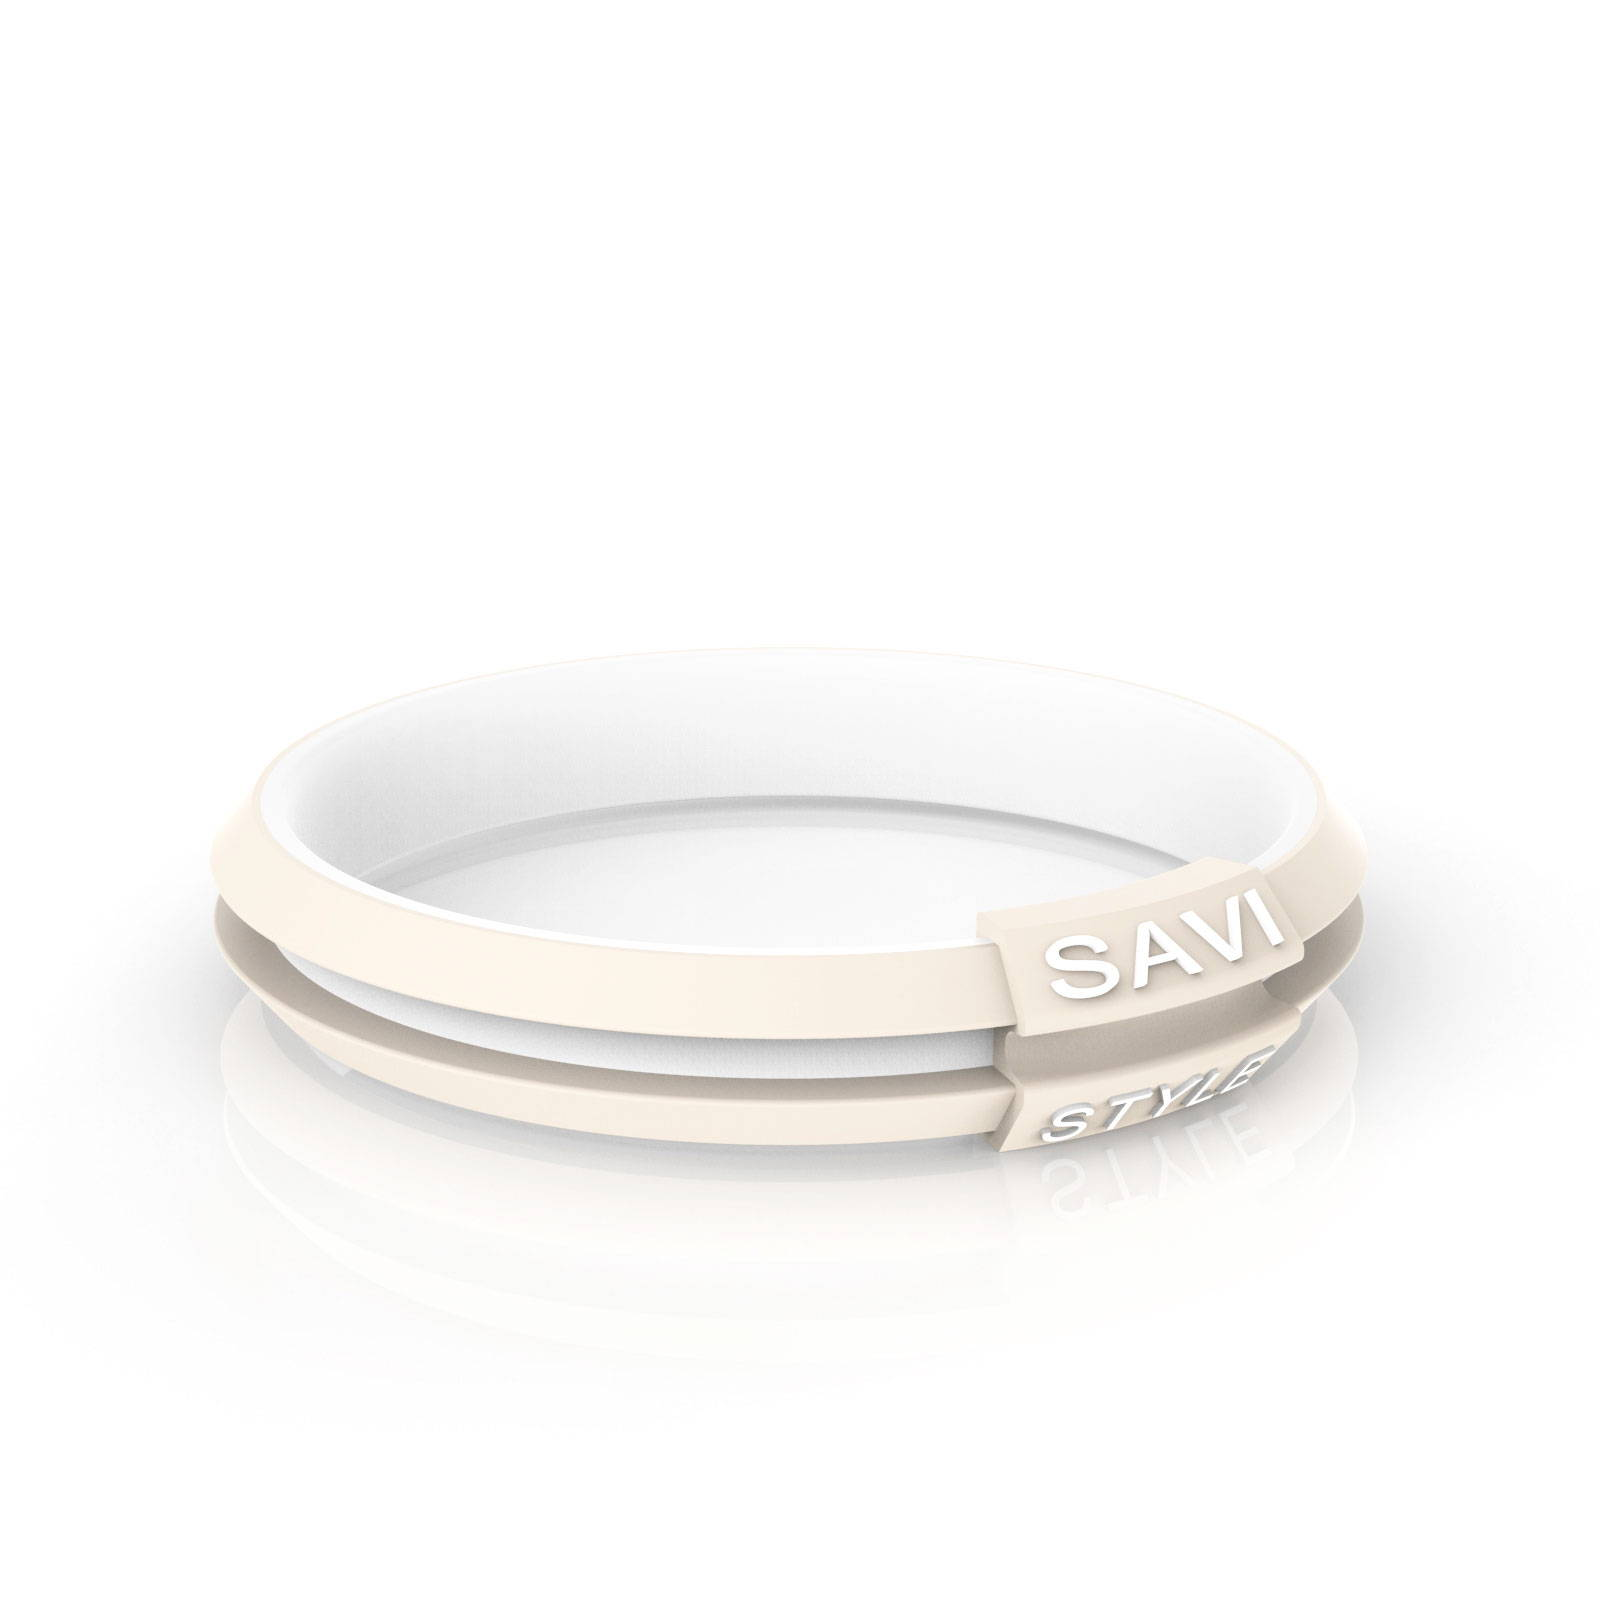 savi sleek south beach by savistyle hair tie bracelet single view